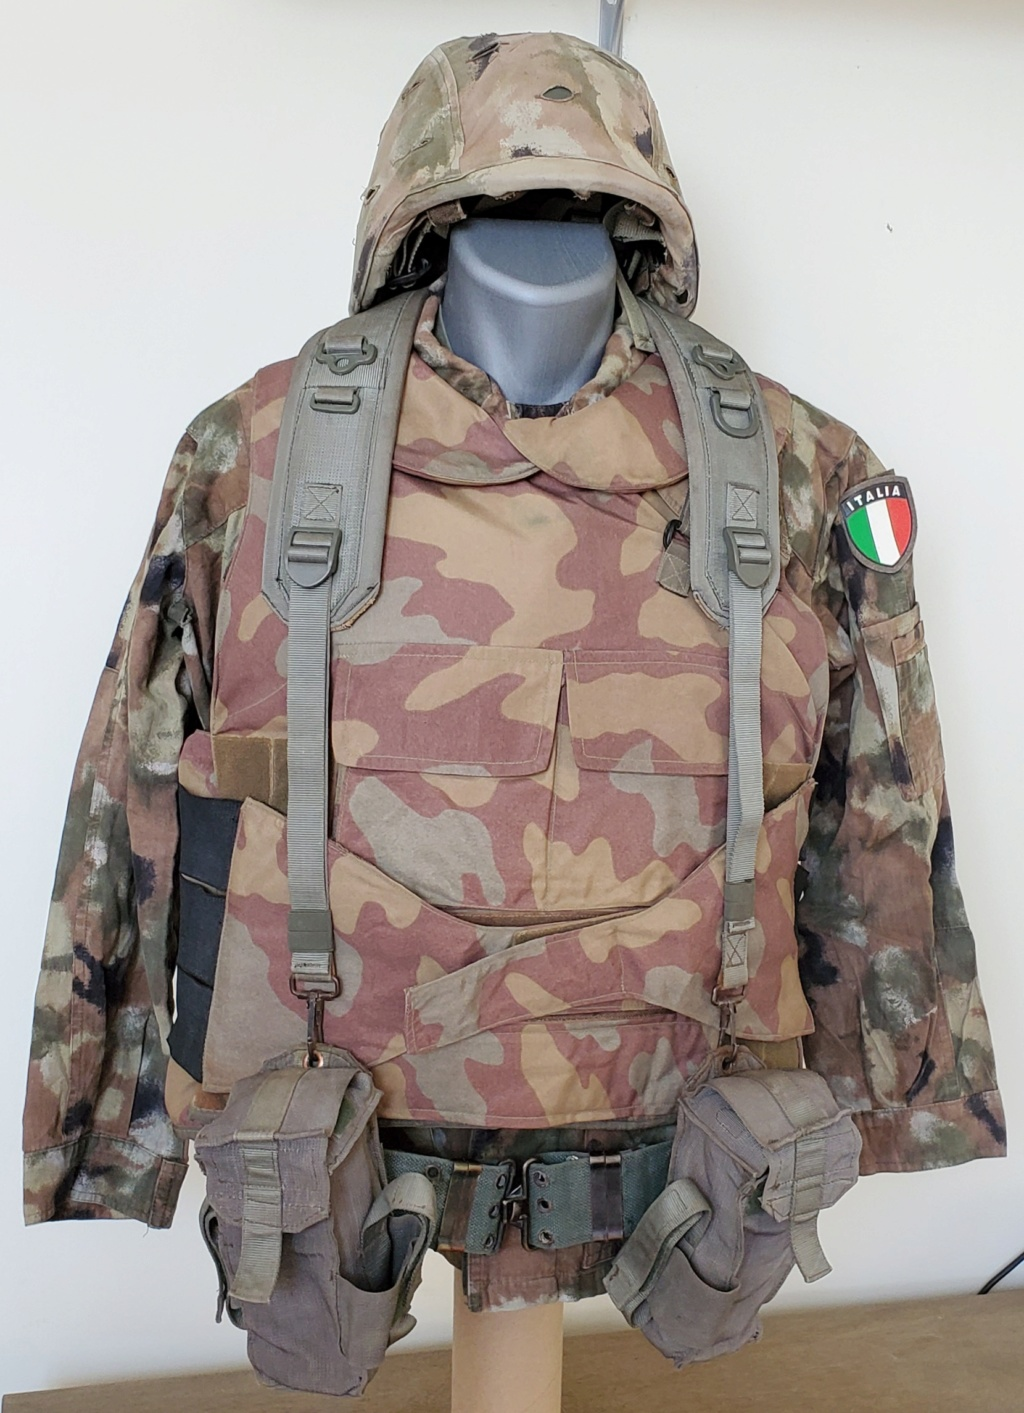 Italian Gear used in Somalia - Operation IBIS 1992-1994. 20200611